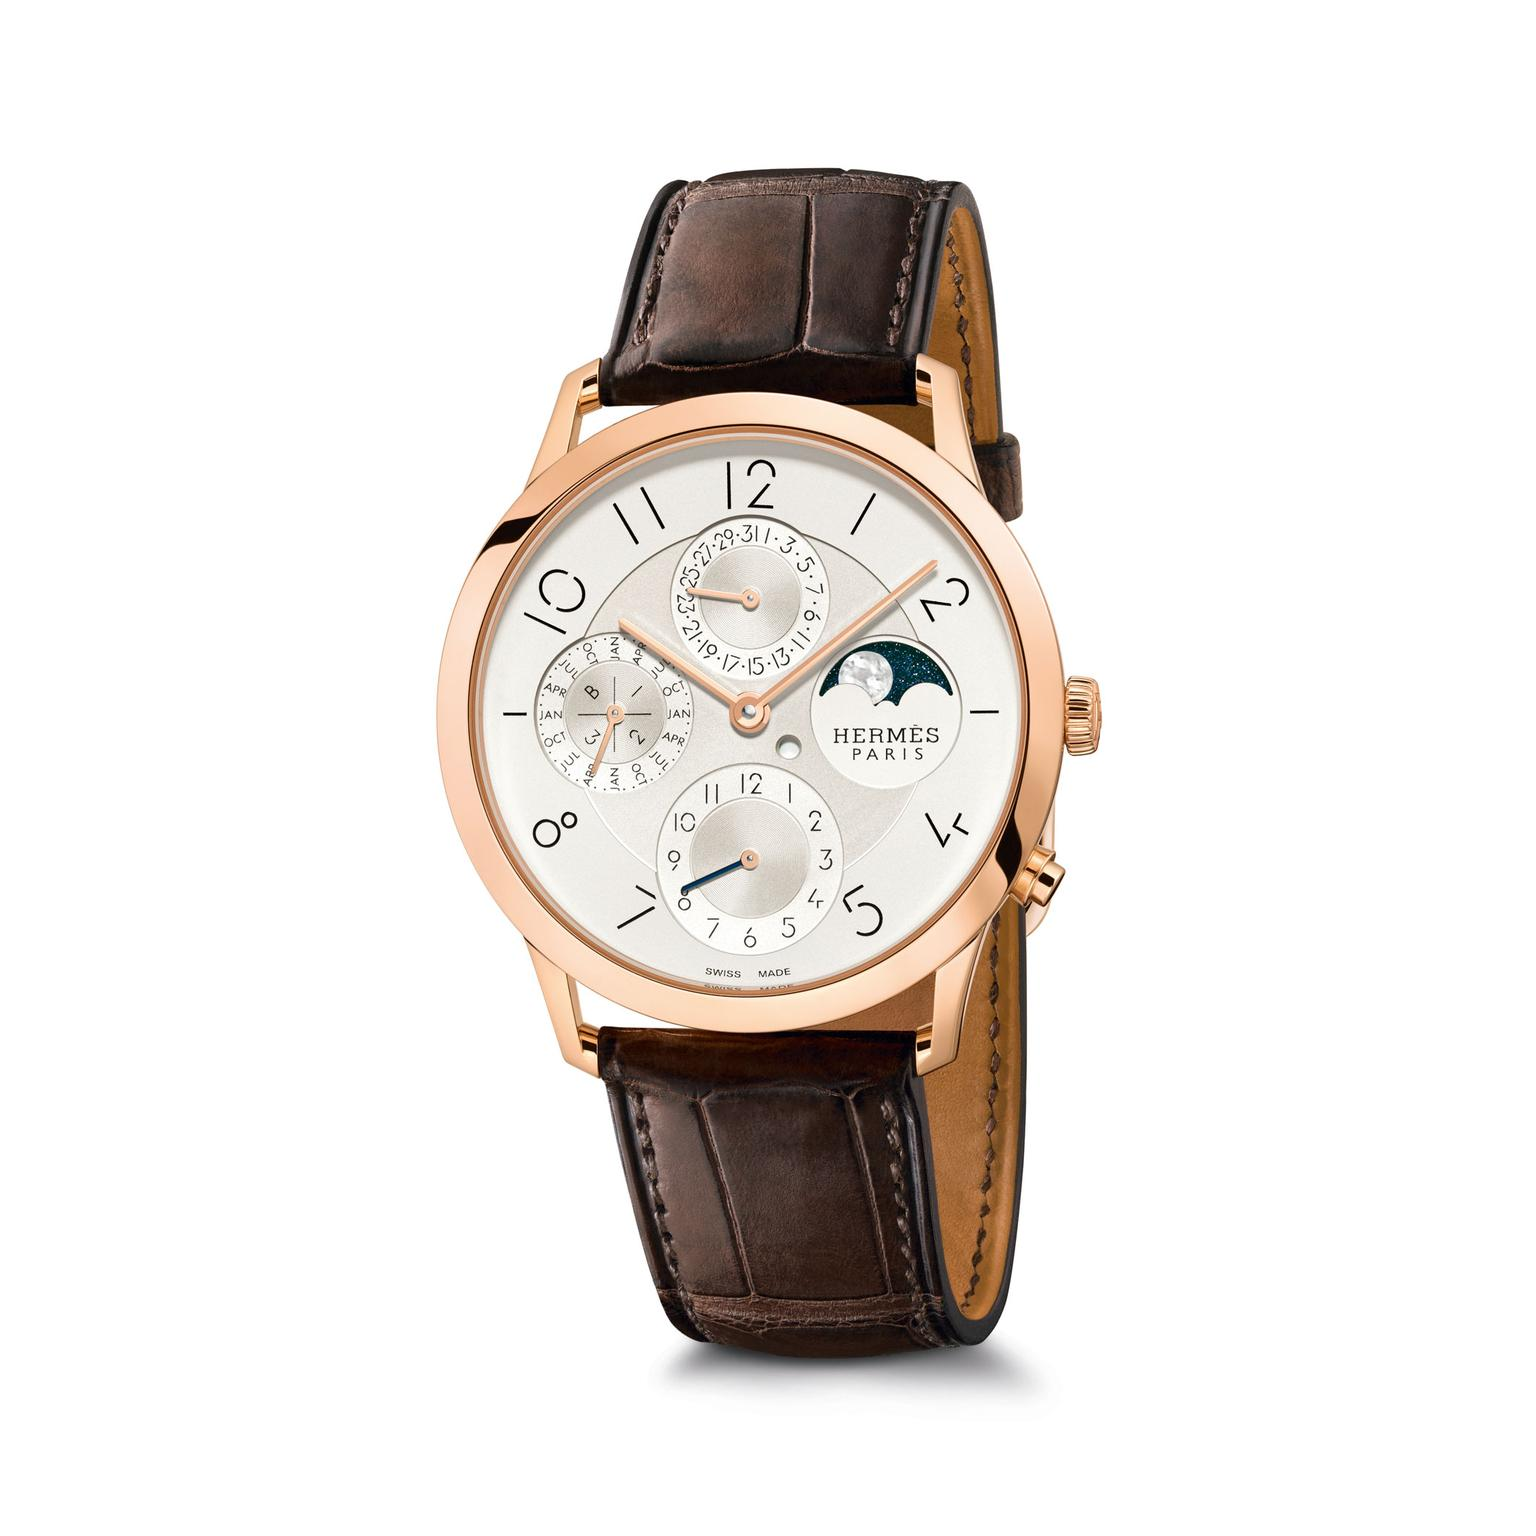 d dial watches scale watch pc gold rose constant product blue subsampling calendar frederique with case shop fr plated upscale crop false rique a perpetual